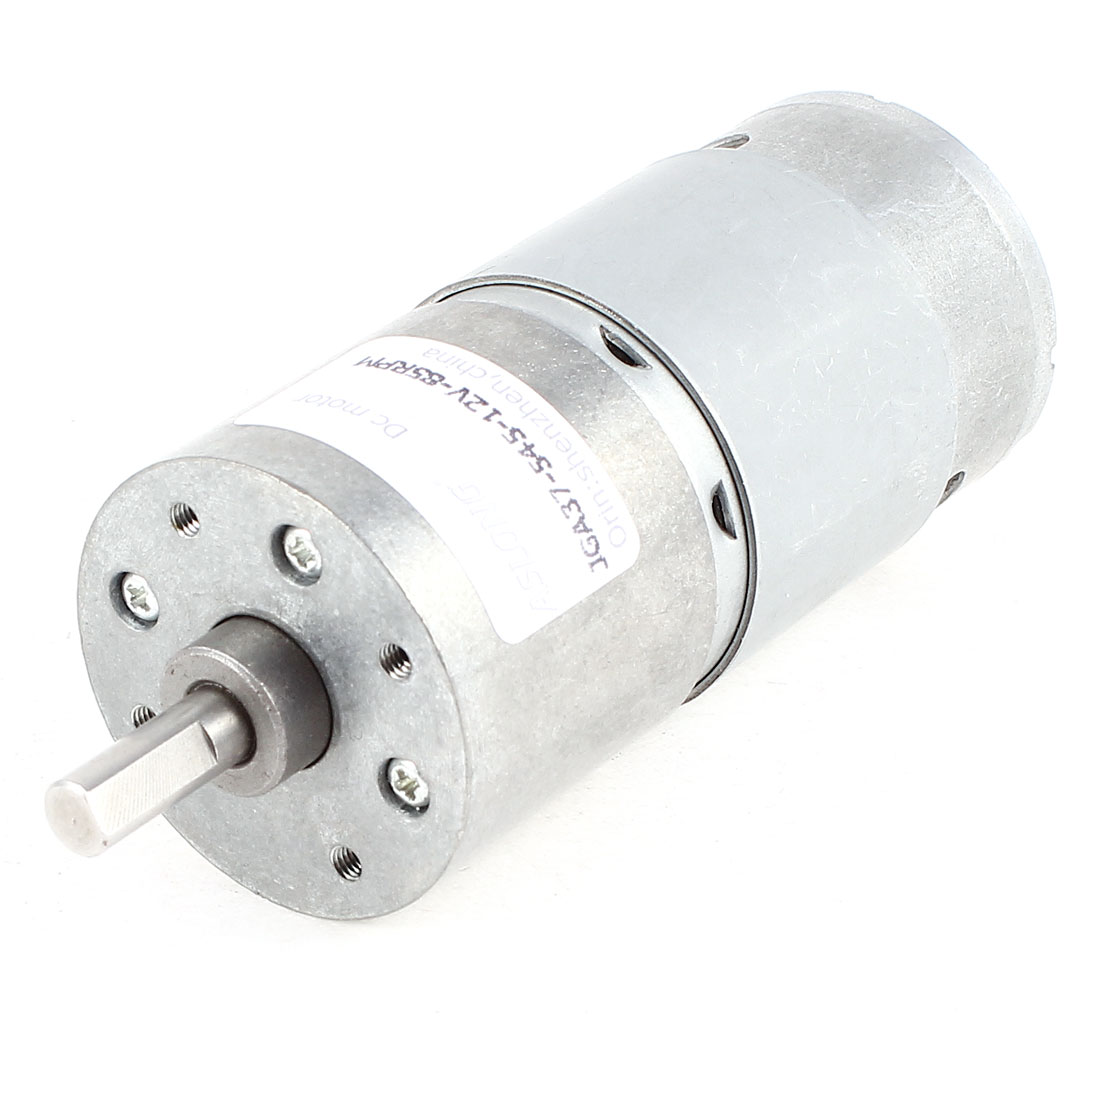 JGA37-545 DC 12V 85RPM Center Axis High Torque Gear Box Geared Micro Motor